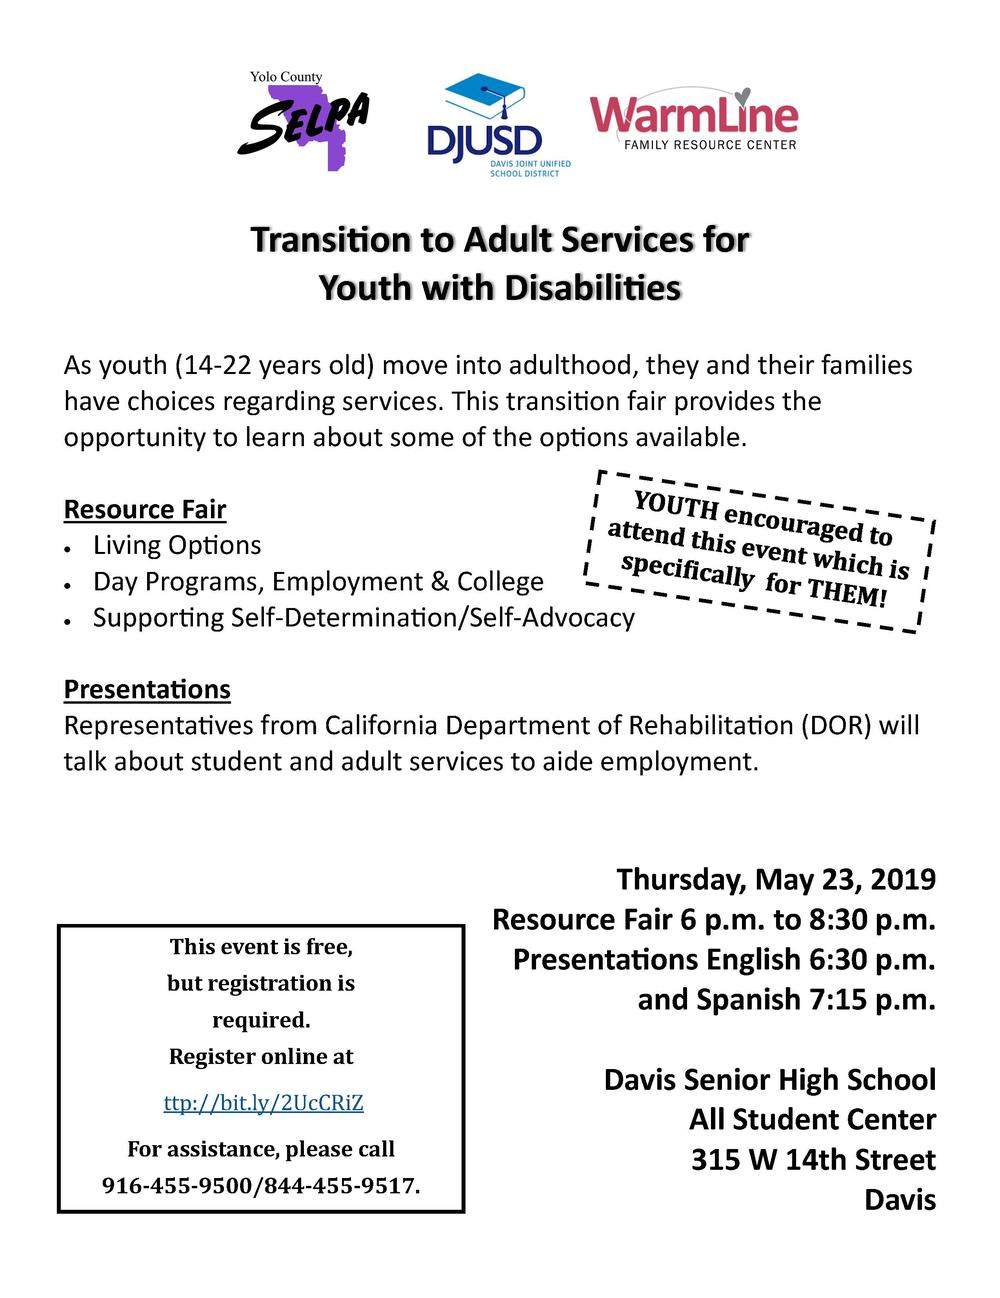 Transition to Adult Services for Youth with Disabilities